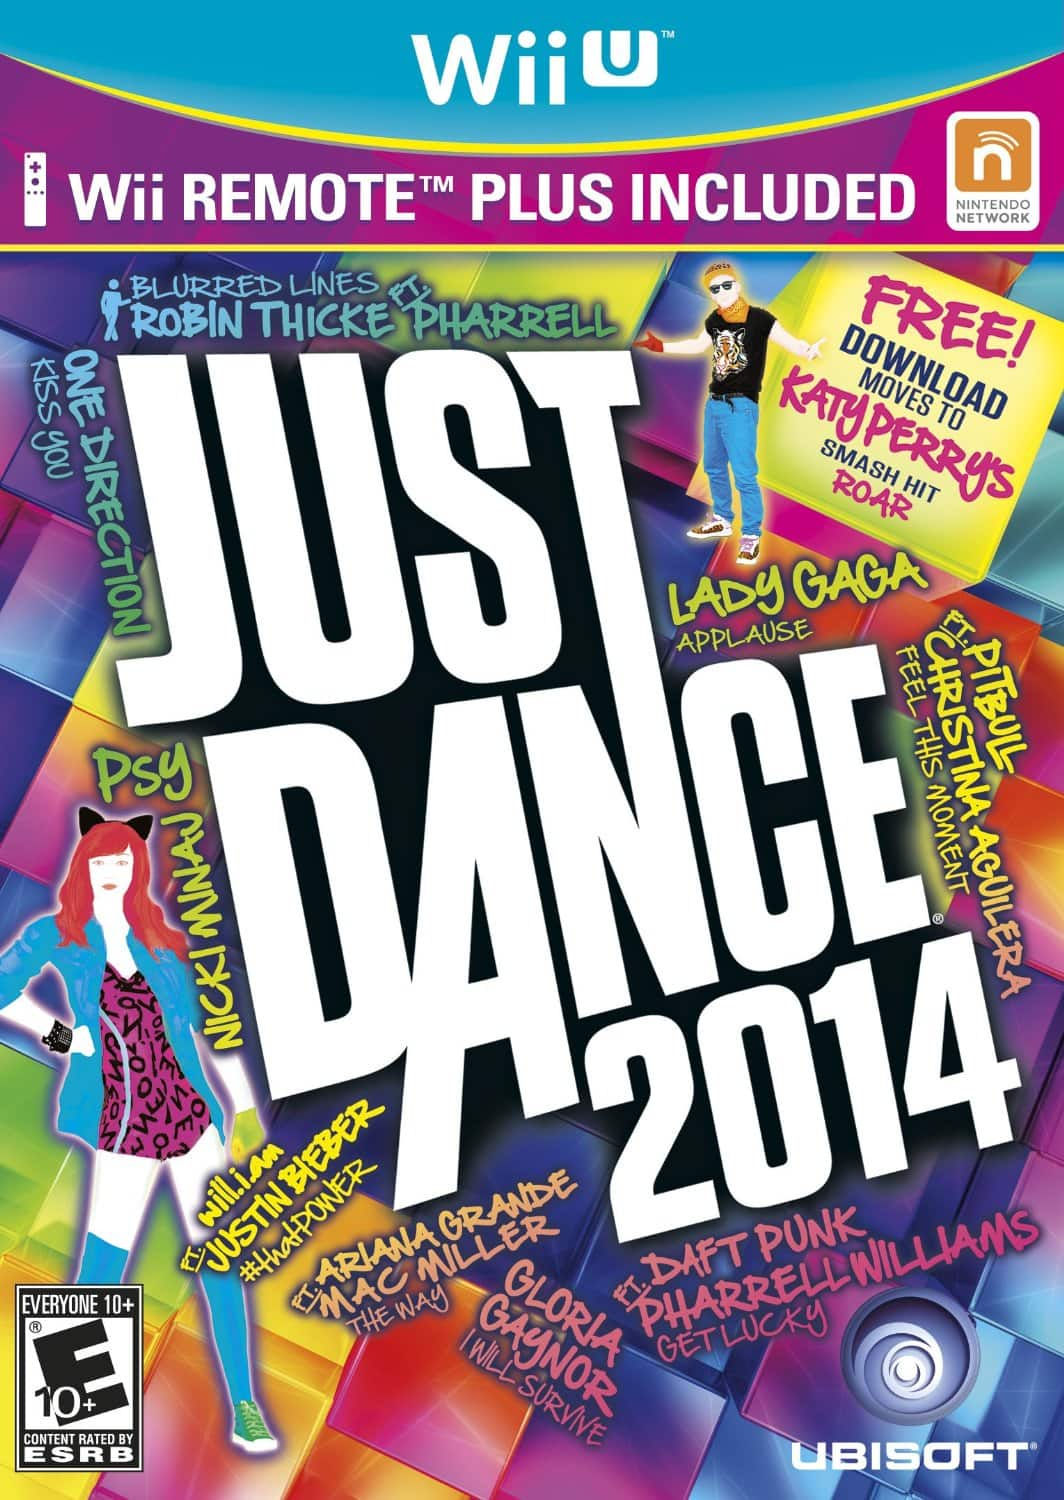 Just Dance 2014 with Wii Remote Plus Controller $30 ($24 with GCU) @ Best Buy